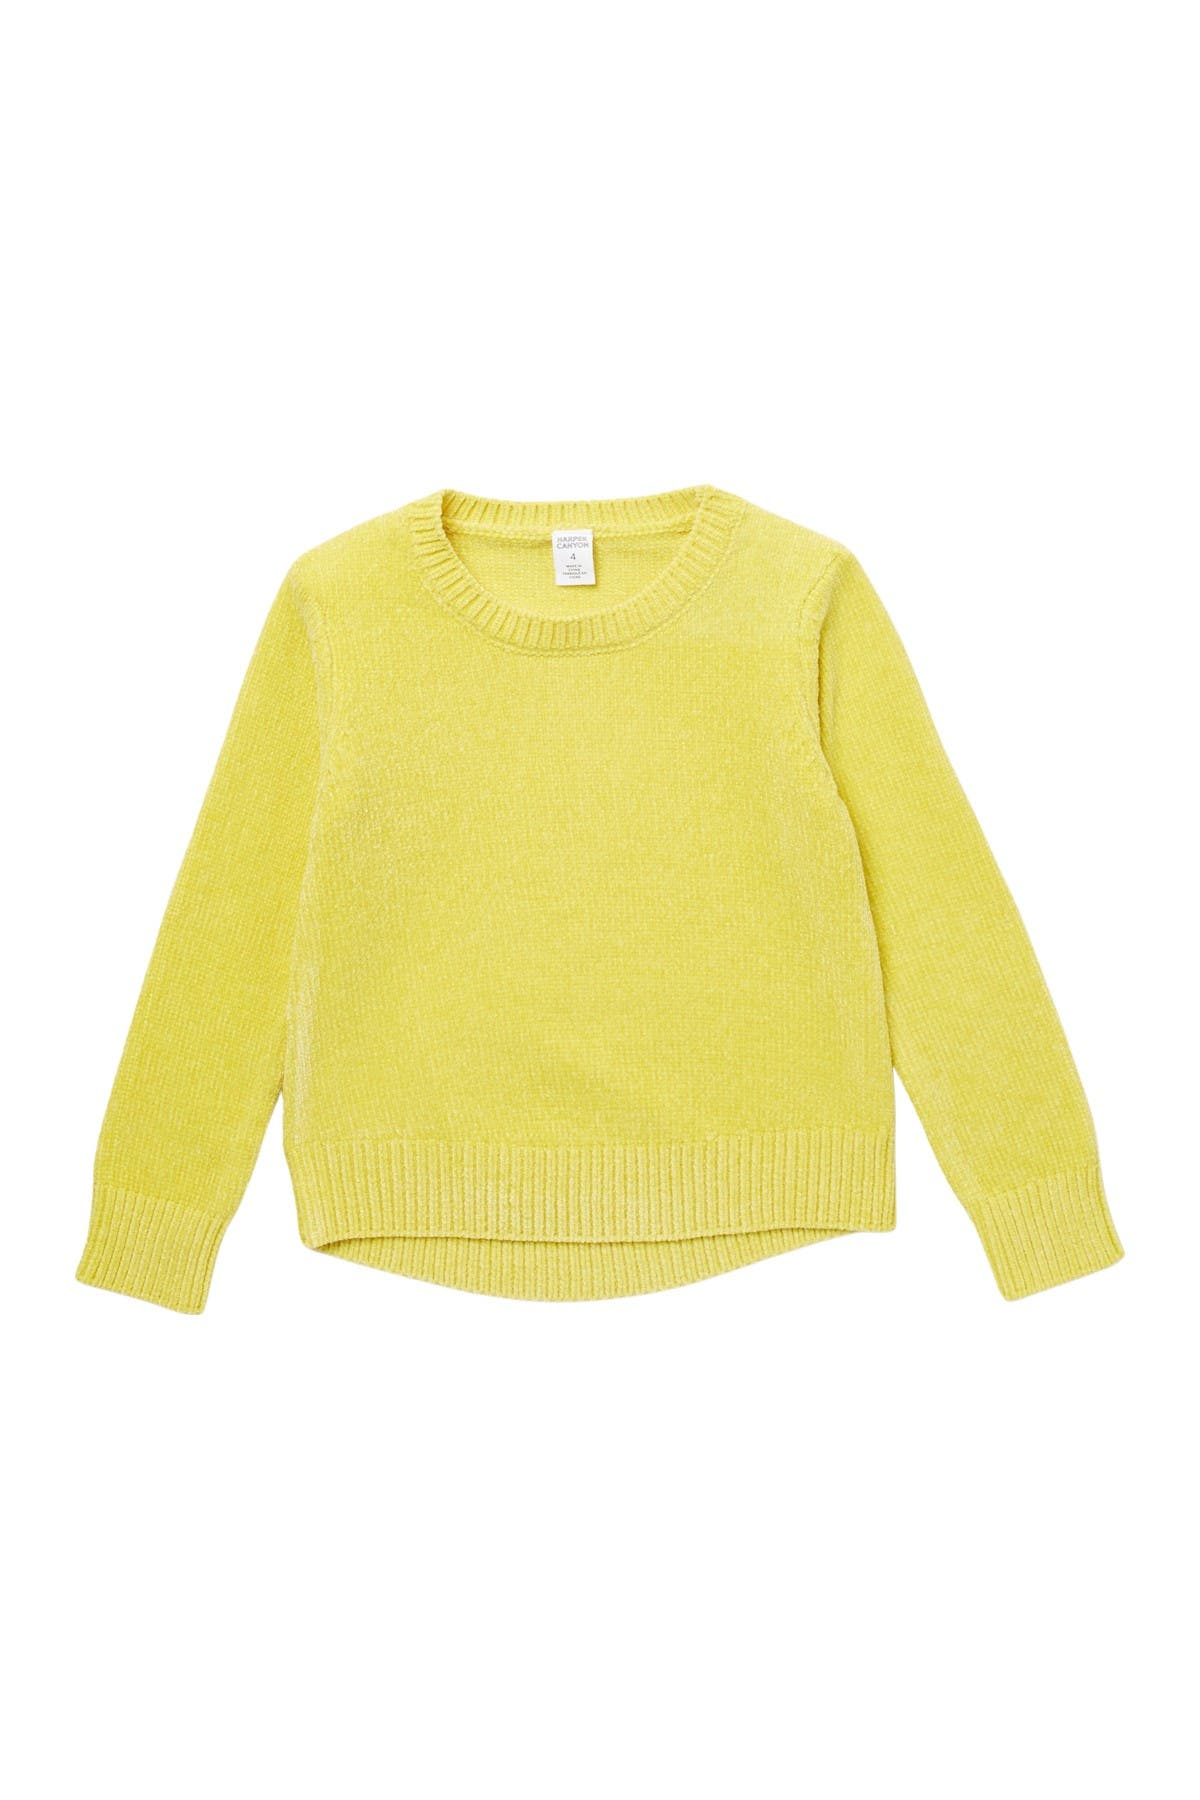 Image of Harper Canyon Chenille Sweater